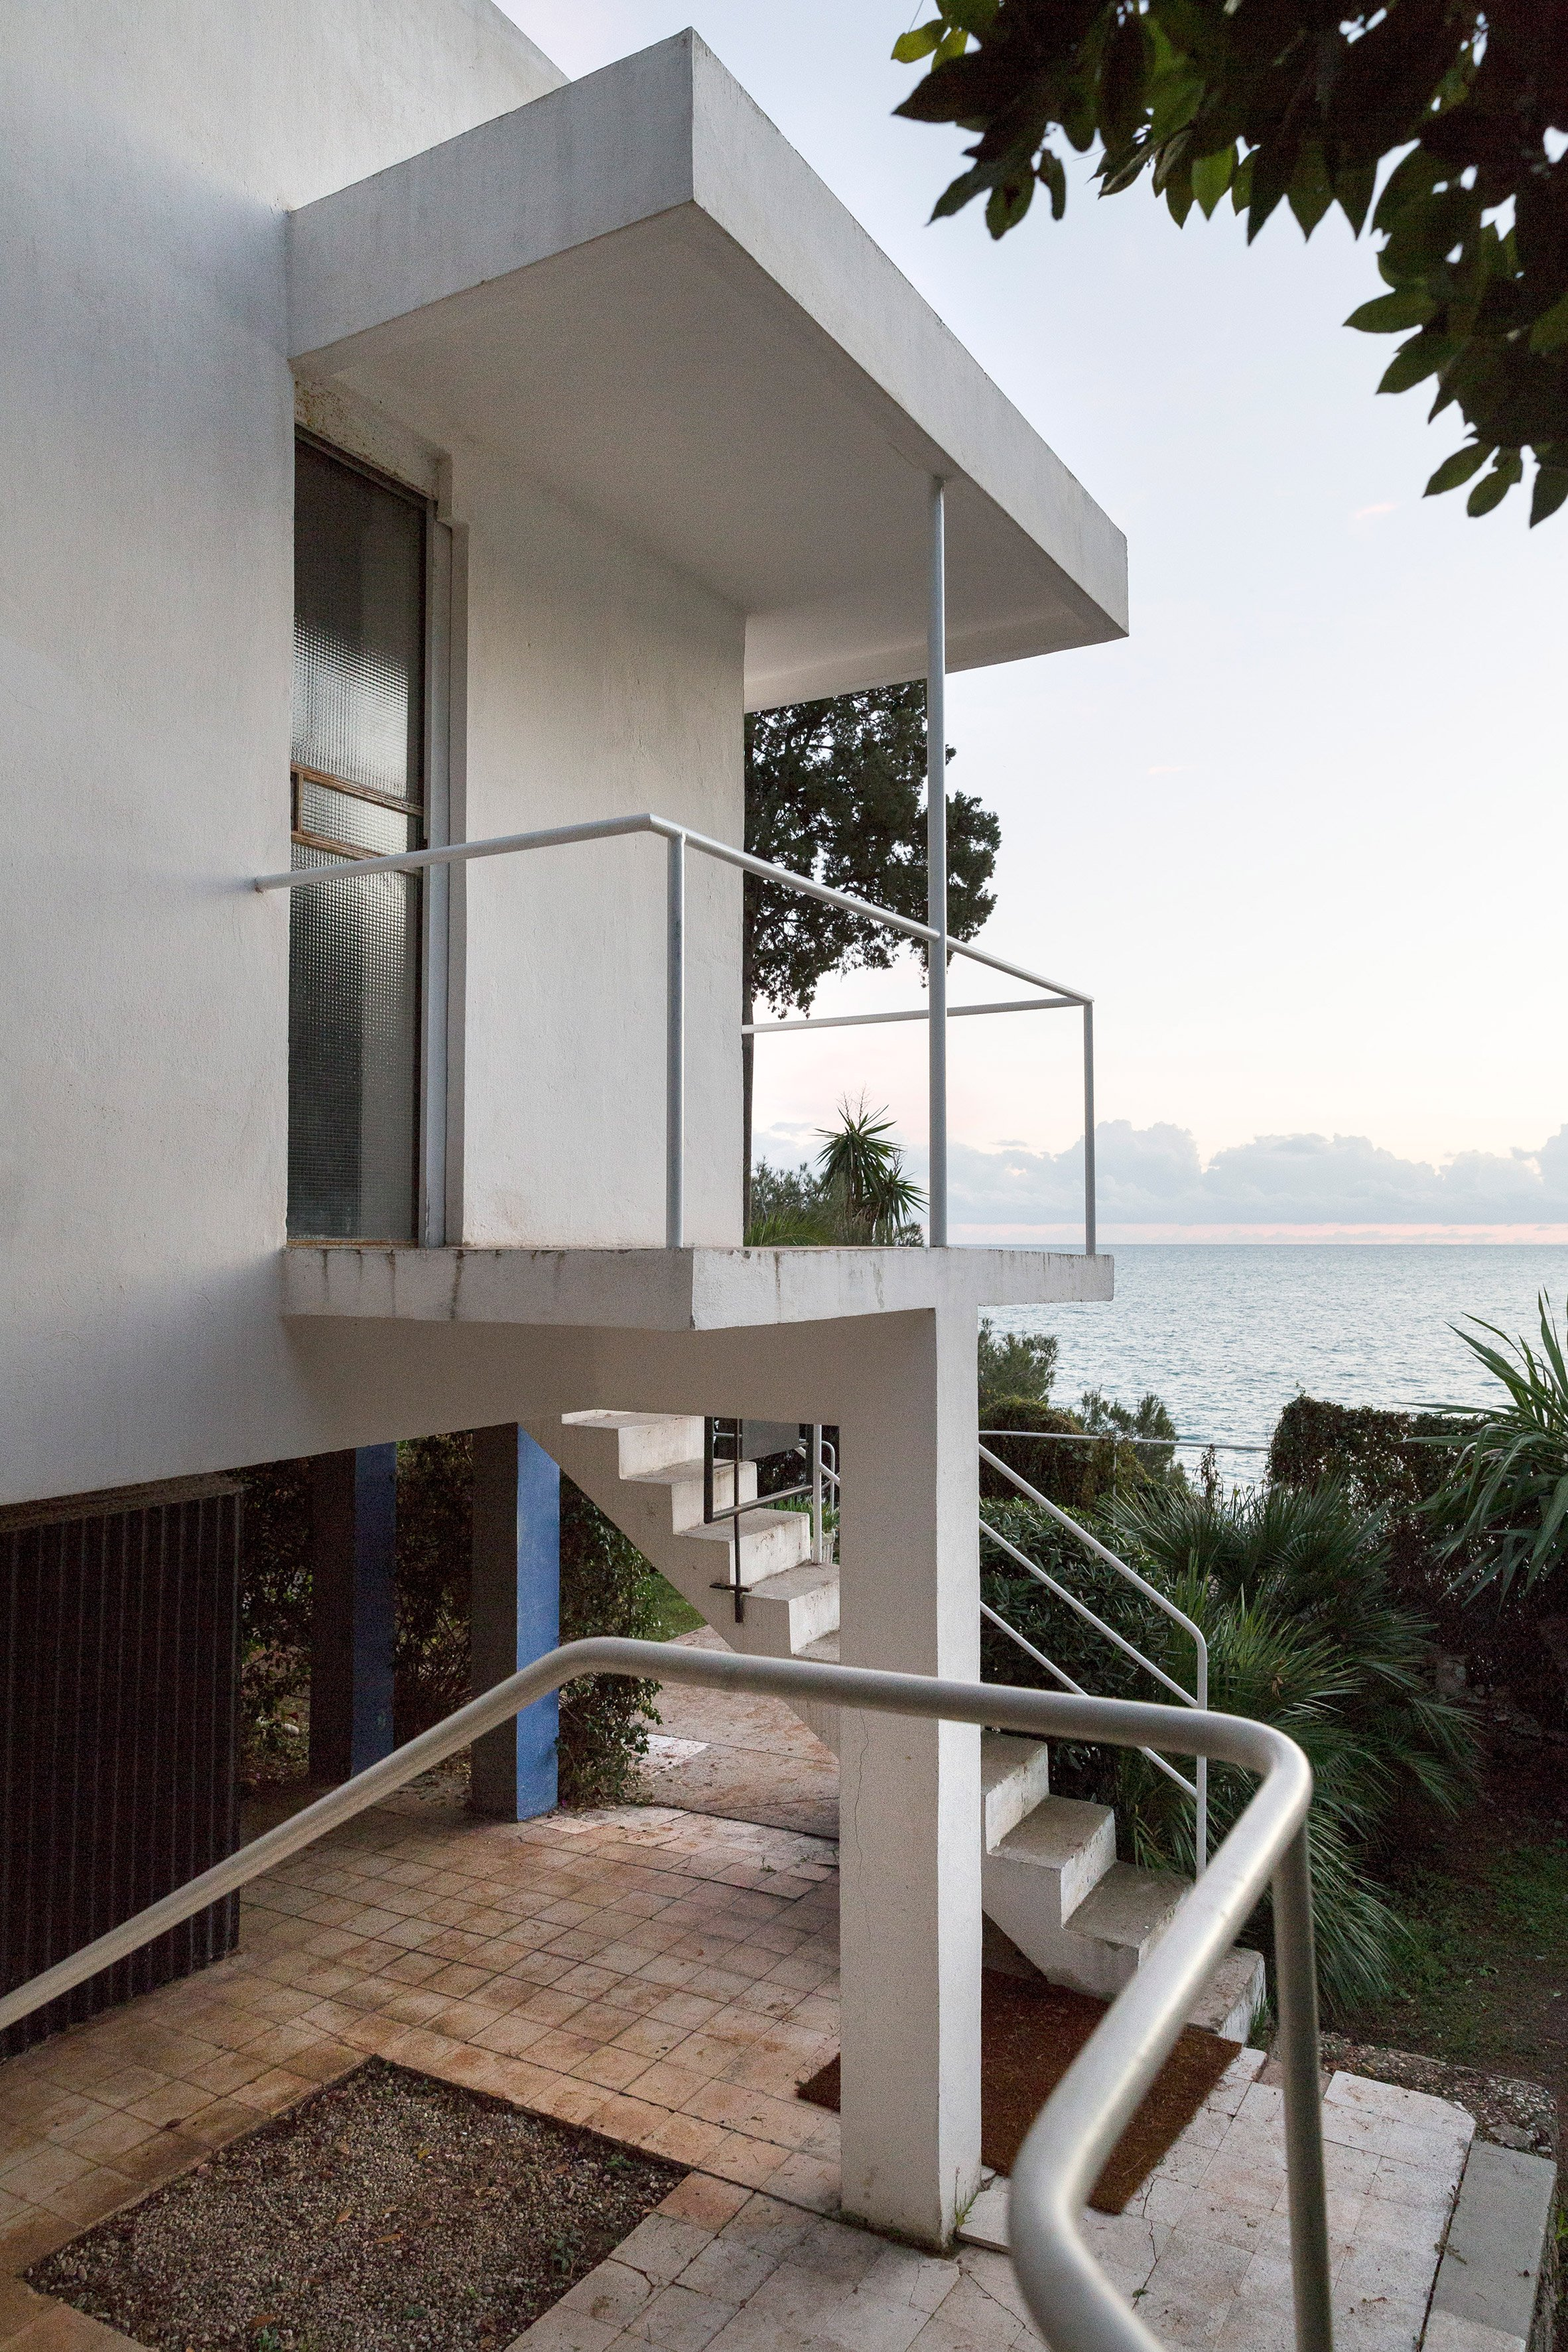 Eileen Gray\'s modernist E-1027 villa revealed in photos by Manuel Bougot